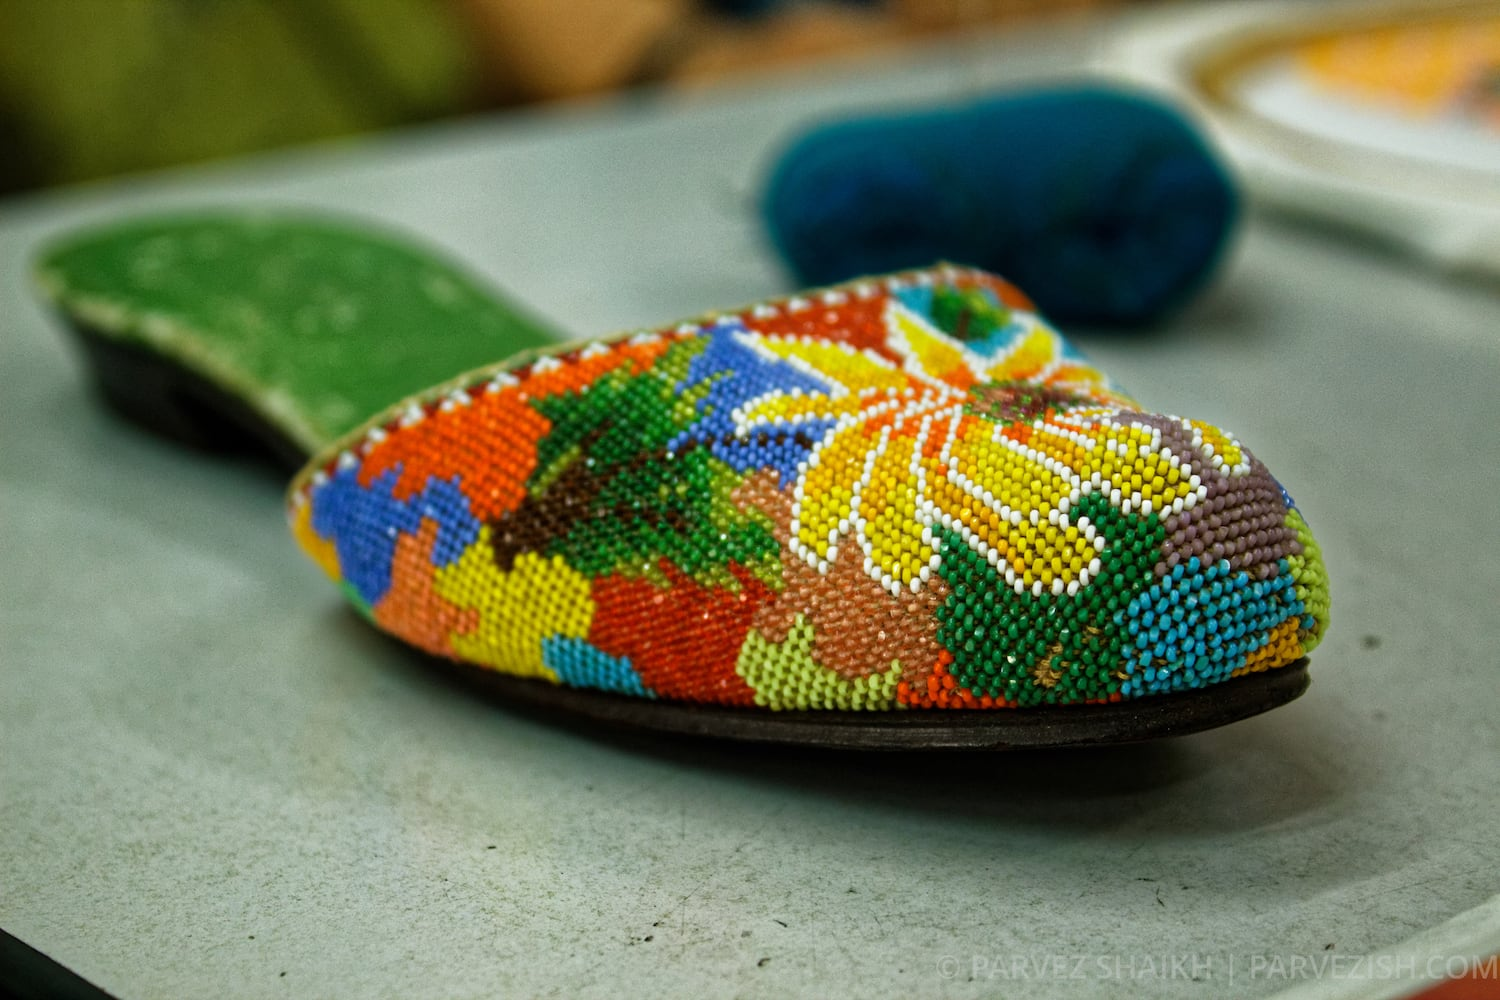 Peranakan beaded slippers in Malacca